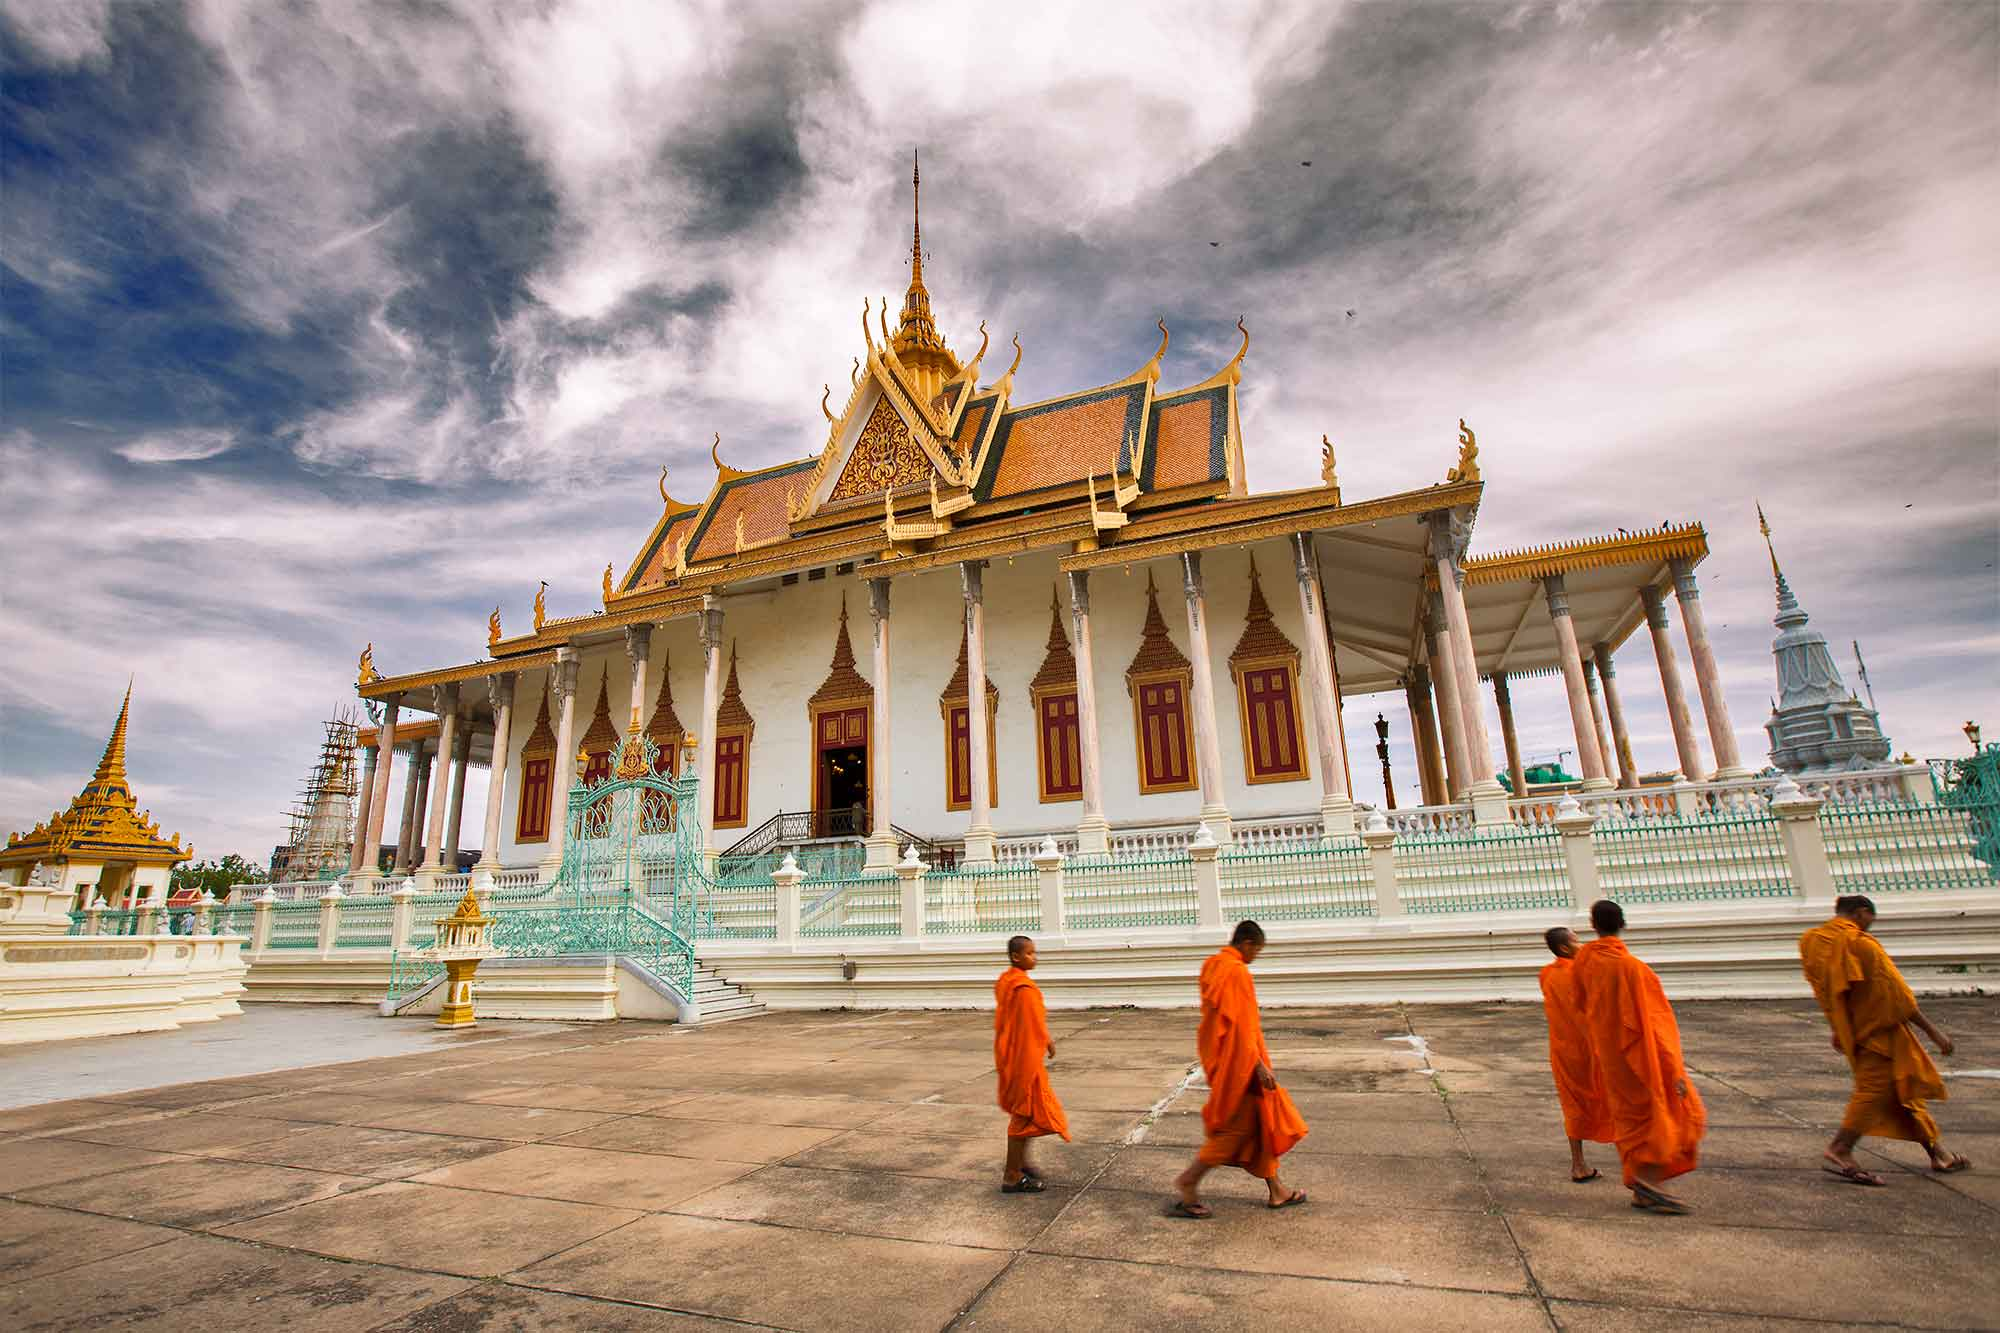 Monks passing by the Golden Temple inside the Royal Palace in Phnome Penh, Cambodia. © ULLI MAIER & NISA MAIER